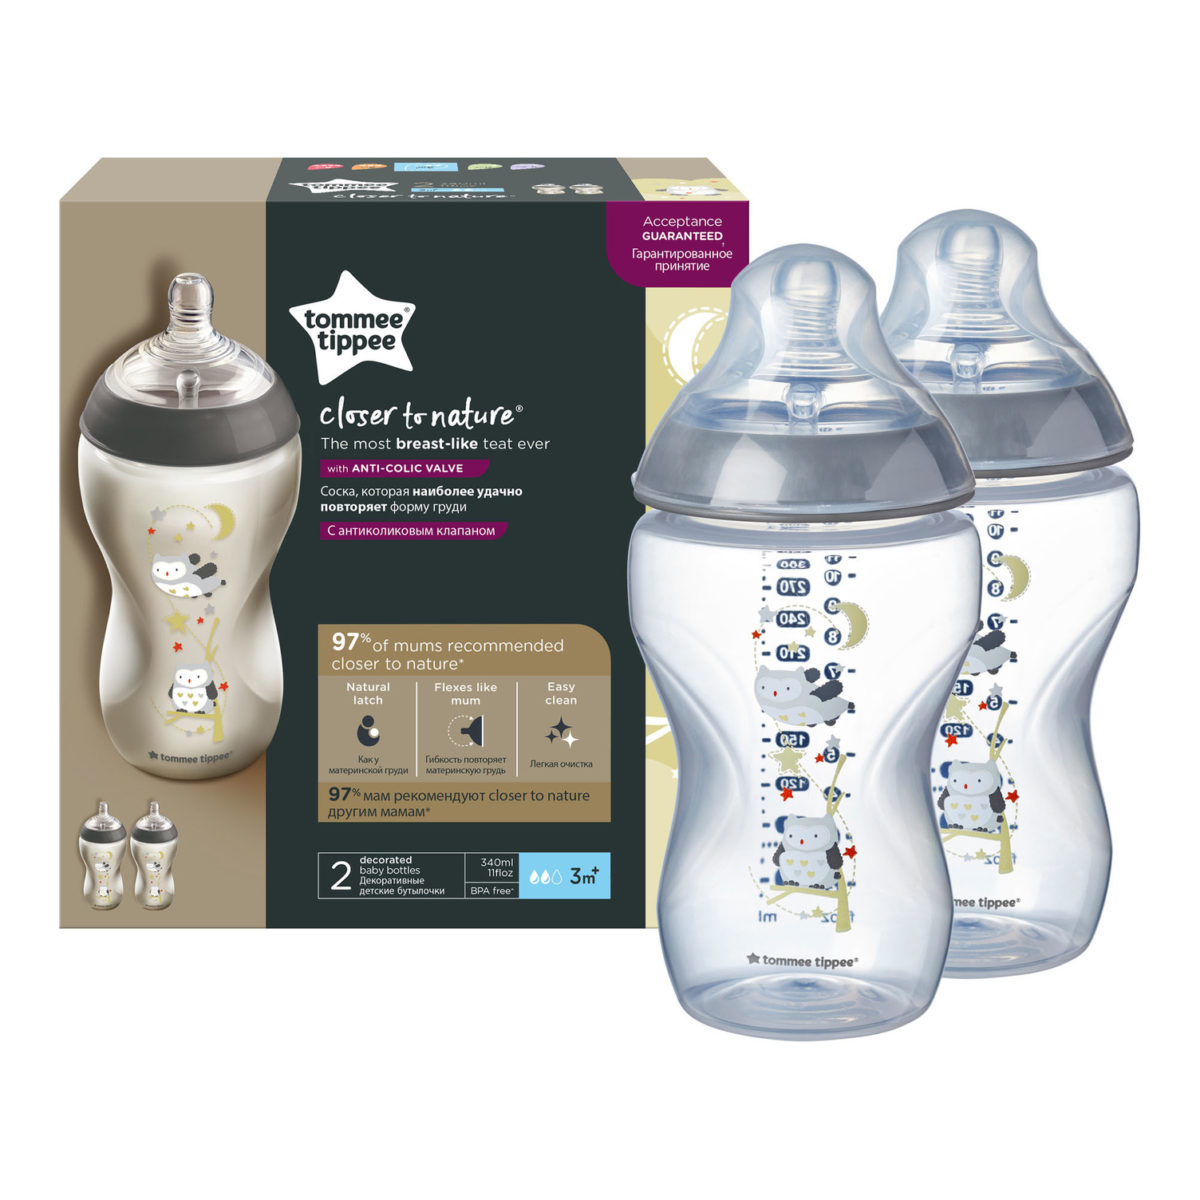 Tommee Tippee Closer to nature cumisuveg 340ml 2 db bagoly